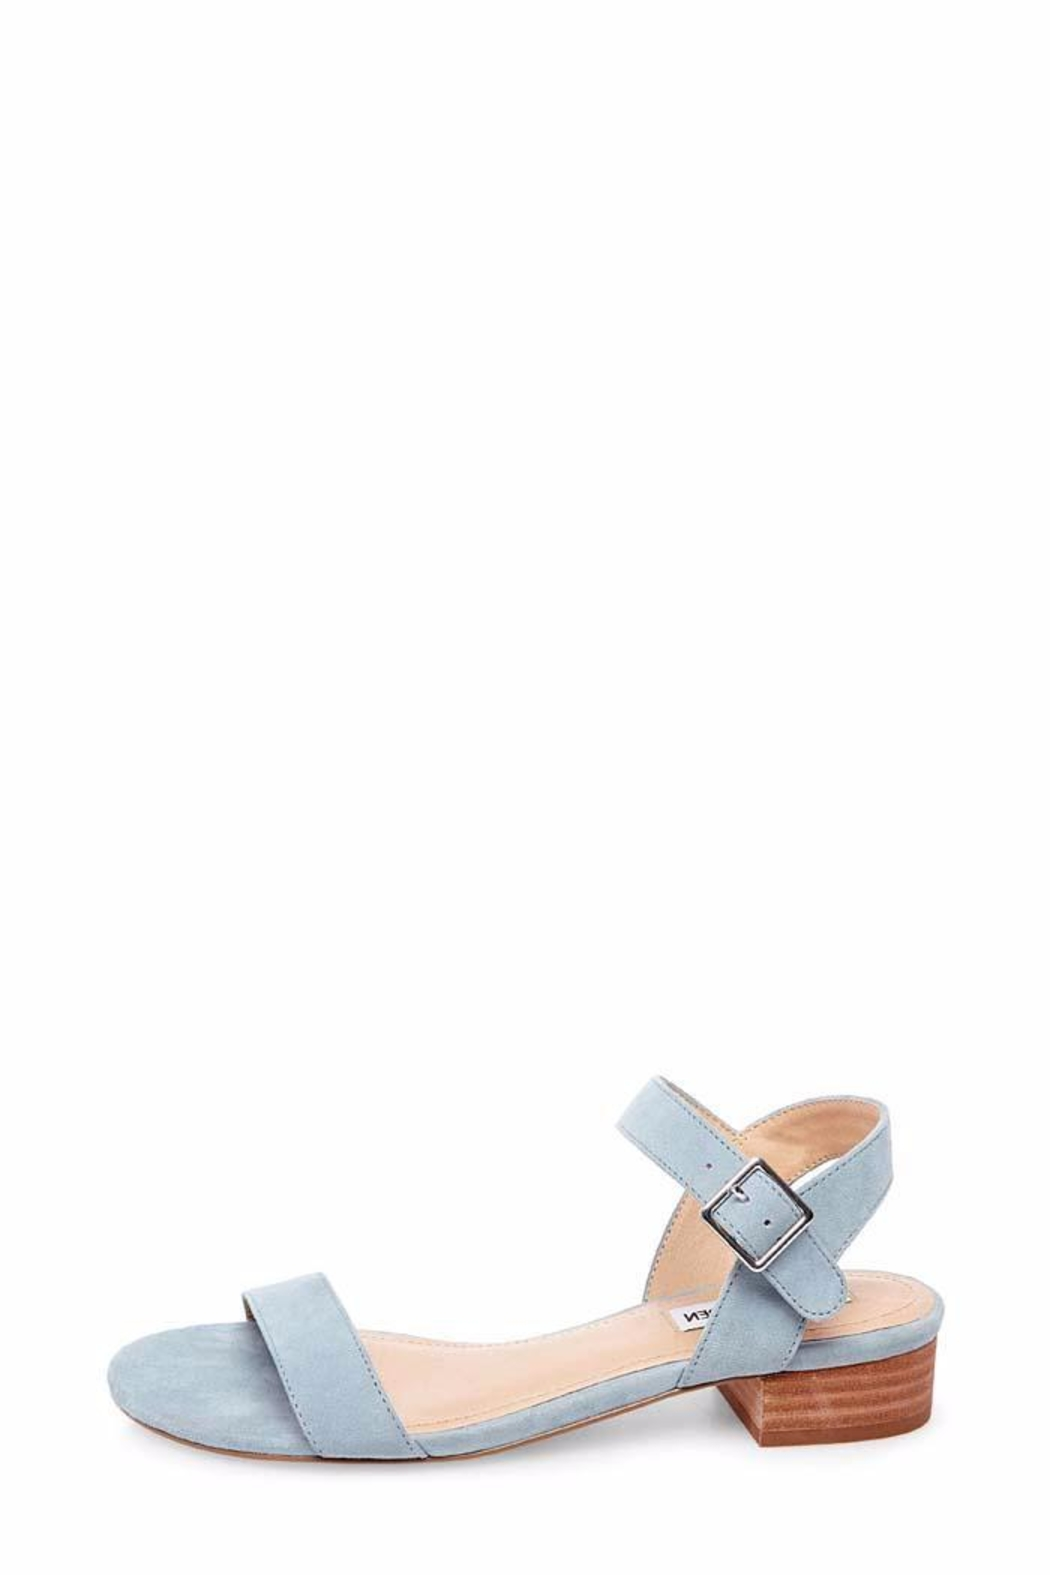 e05aab80e89 Steve Madden Cache Sandal from New York by Luna — Shoptiques